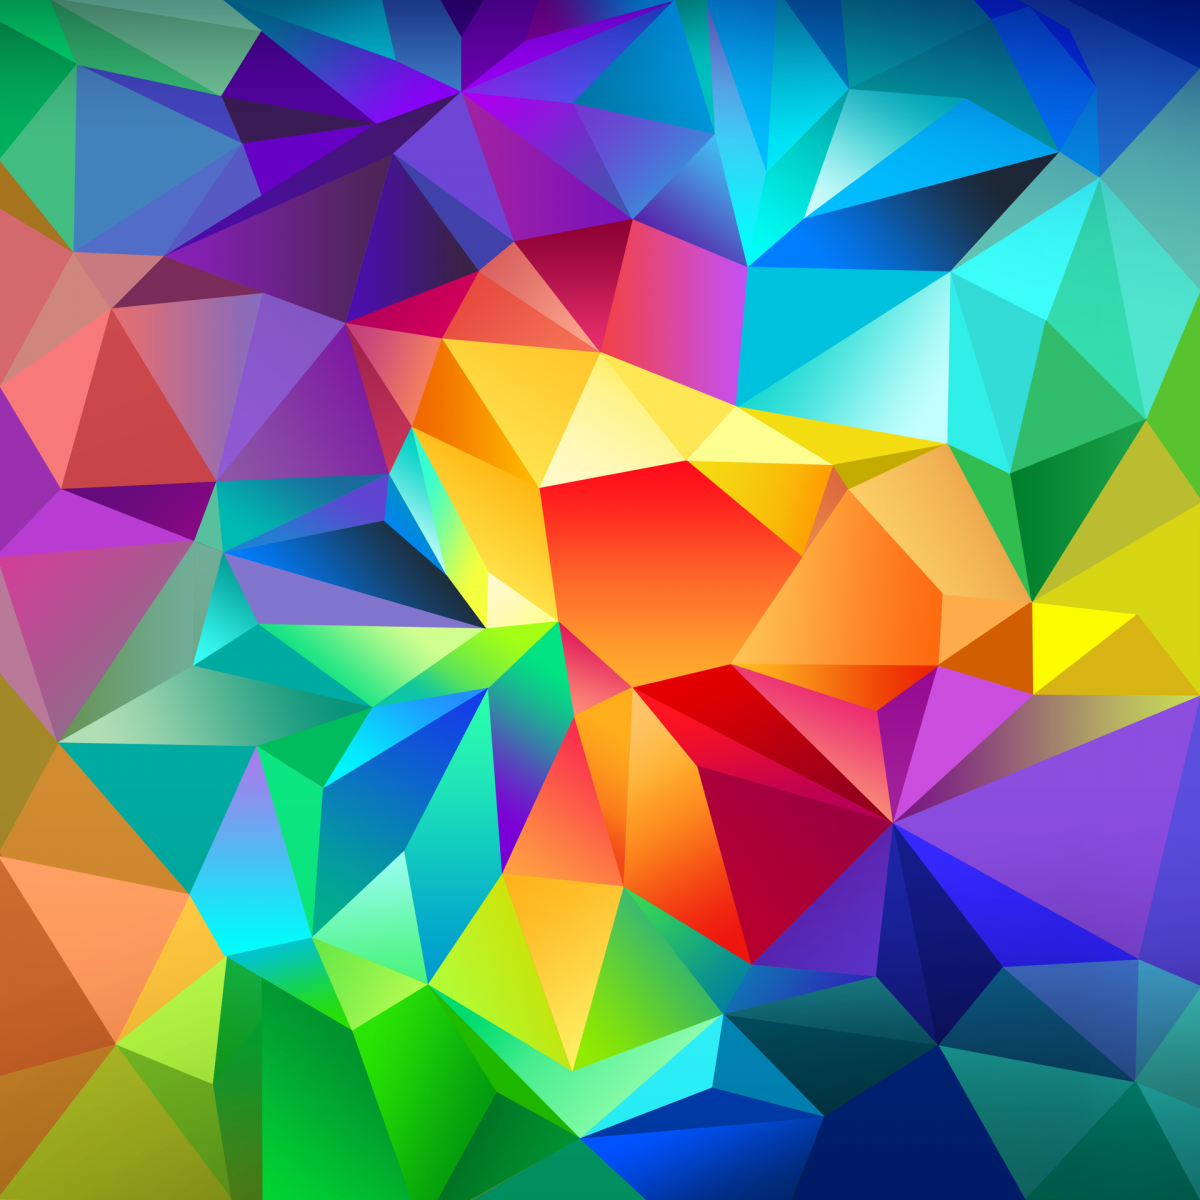 Download] Get all the Samsung Galaxy S5 wallpapers here Now 1200x1200